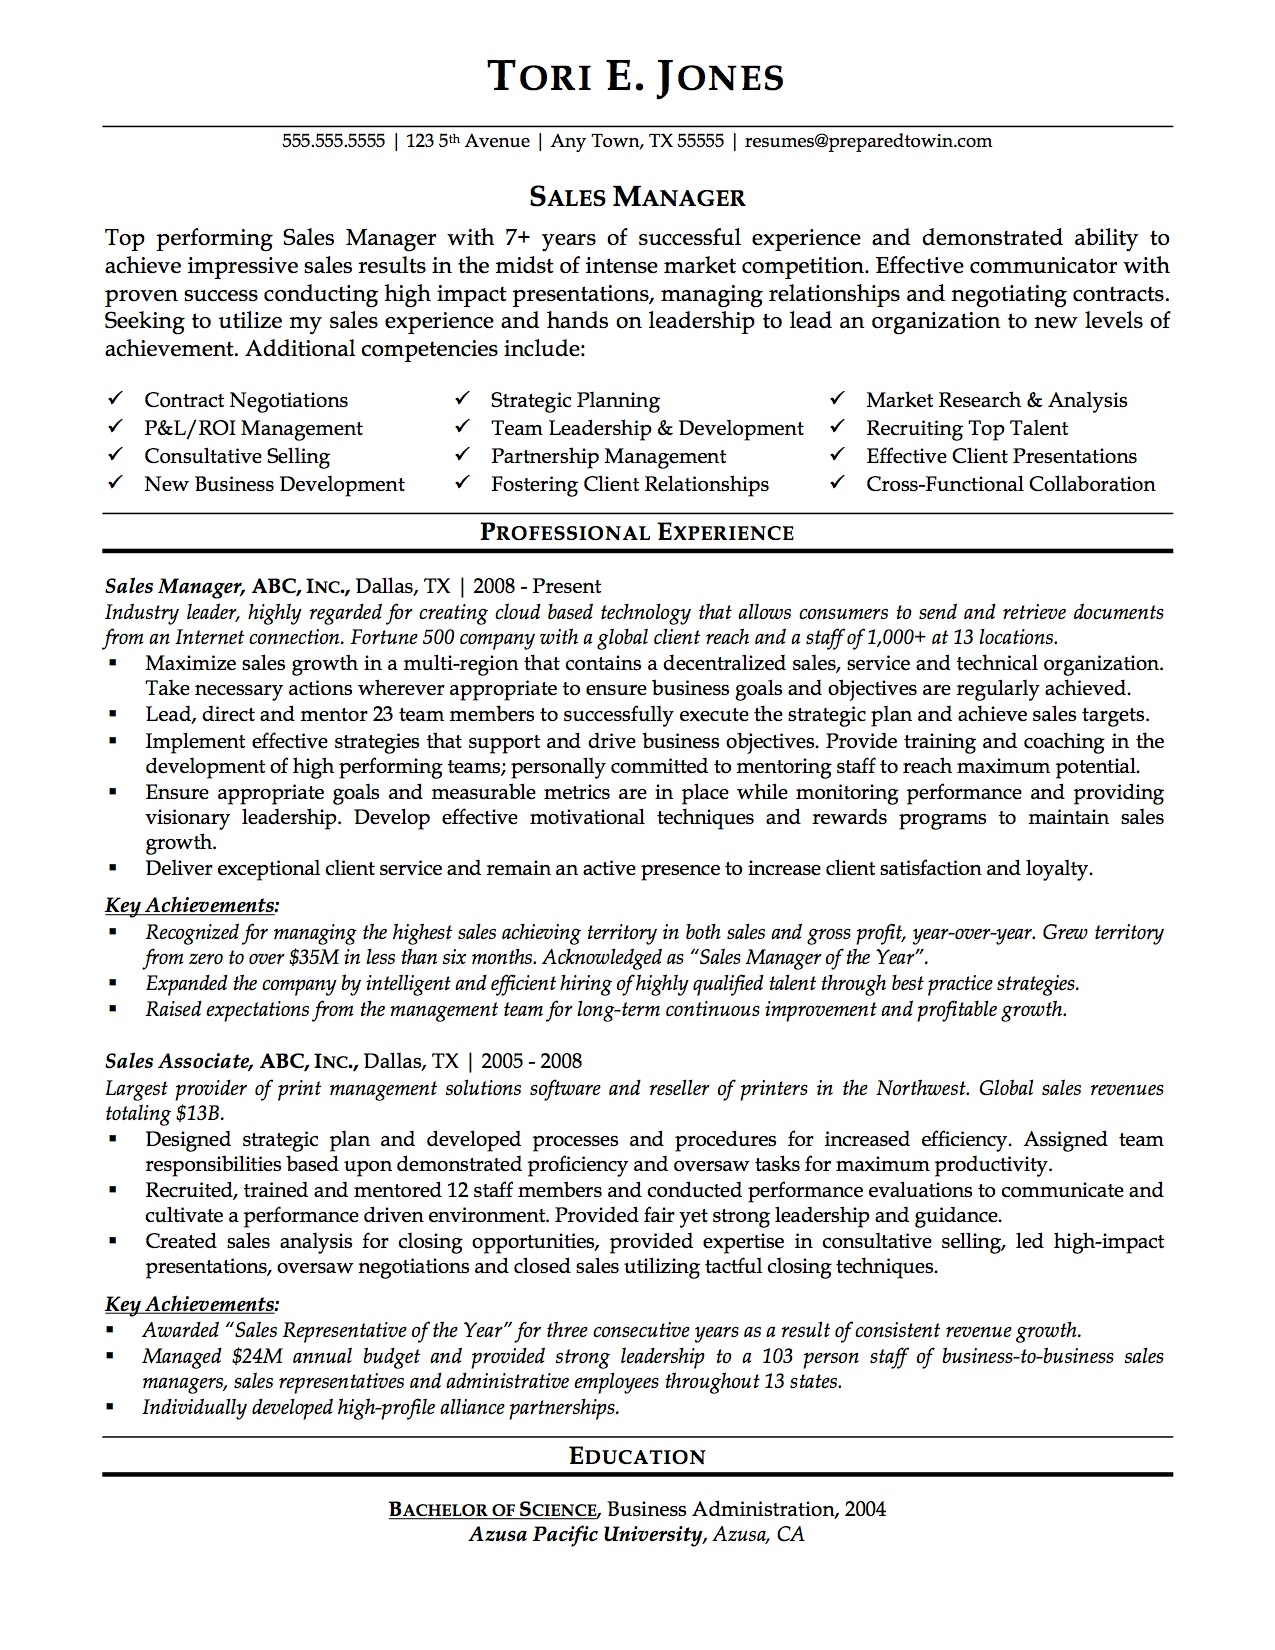 Basic Resume Format 2013 Viewing Gallery